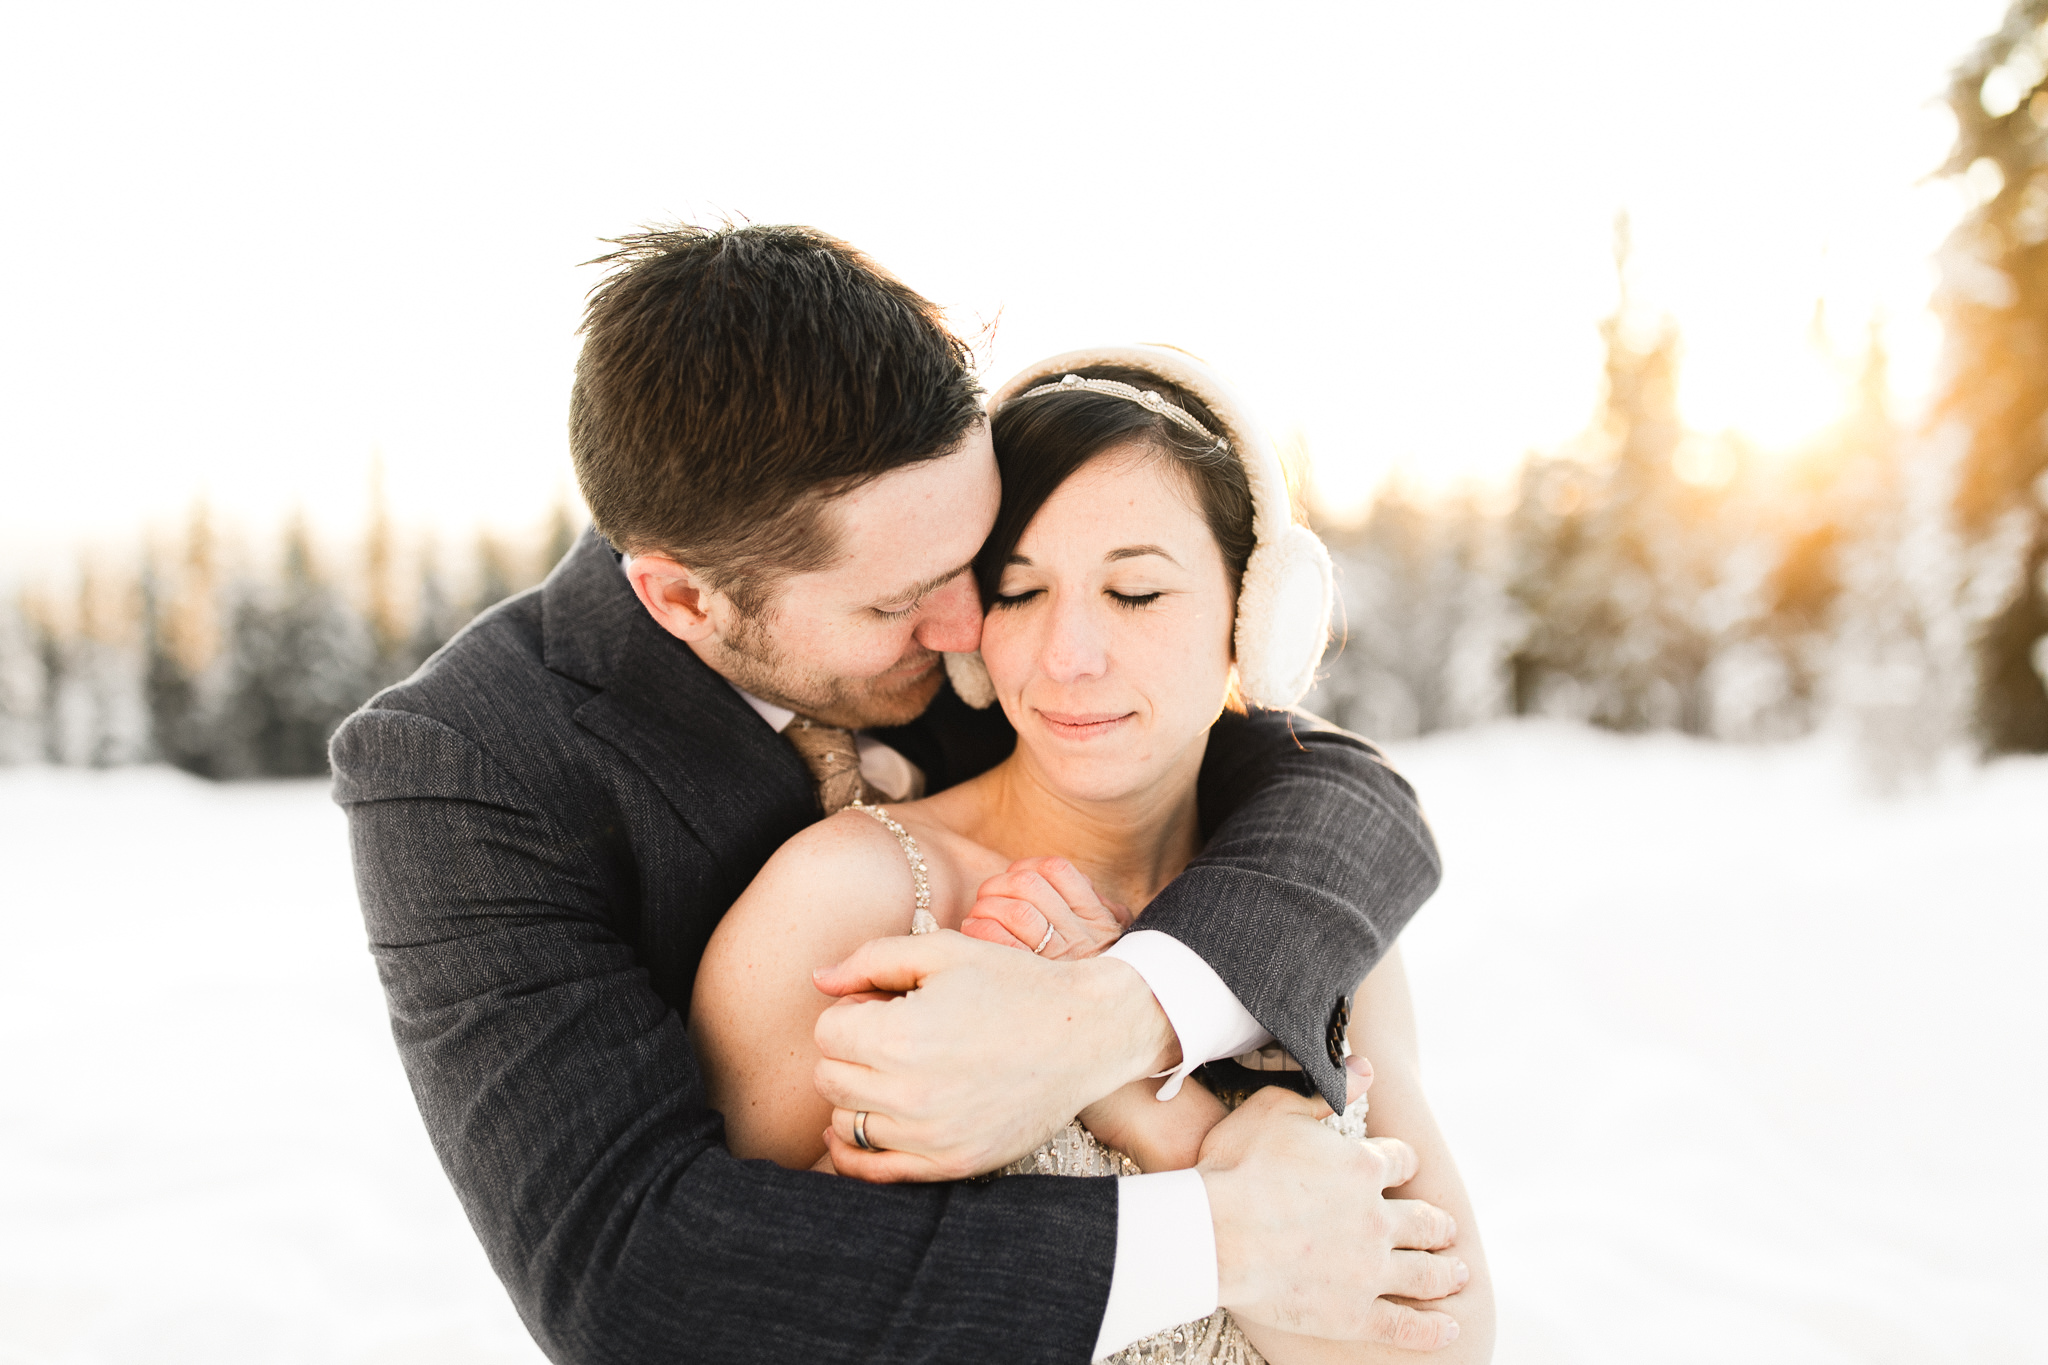 sunset wedding photos fairbanks alaska